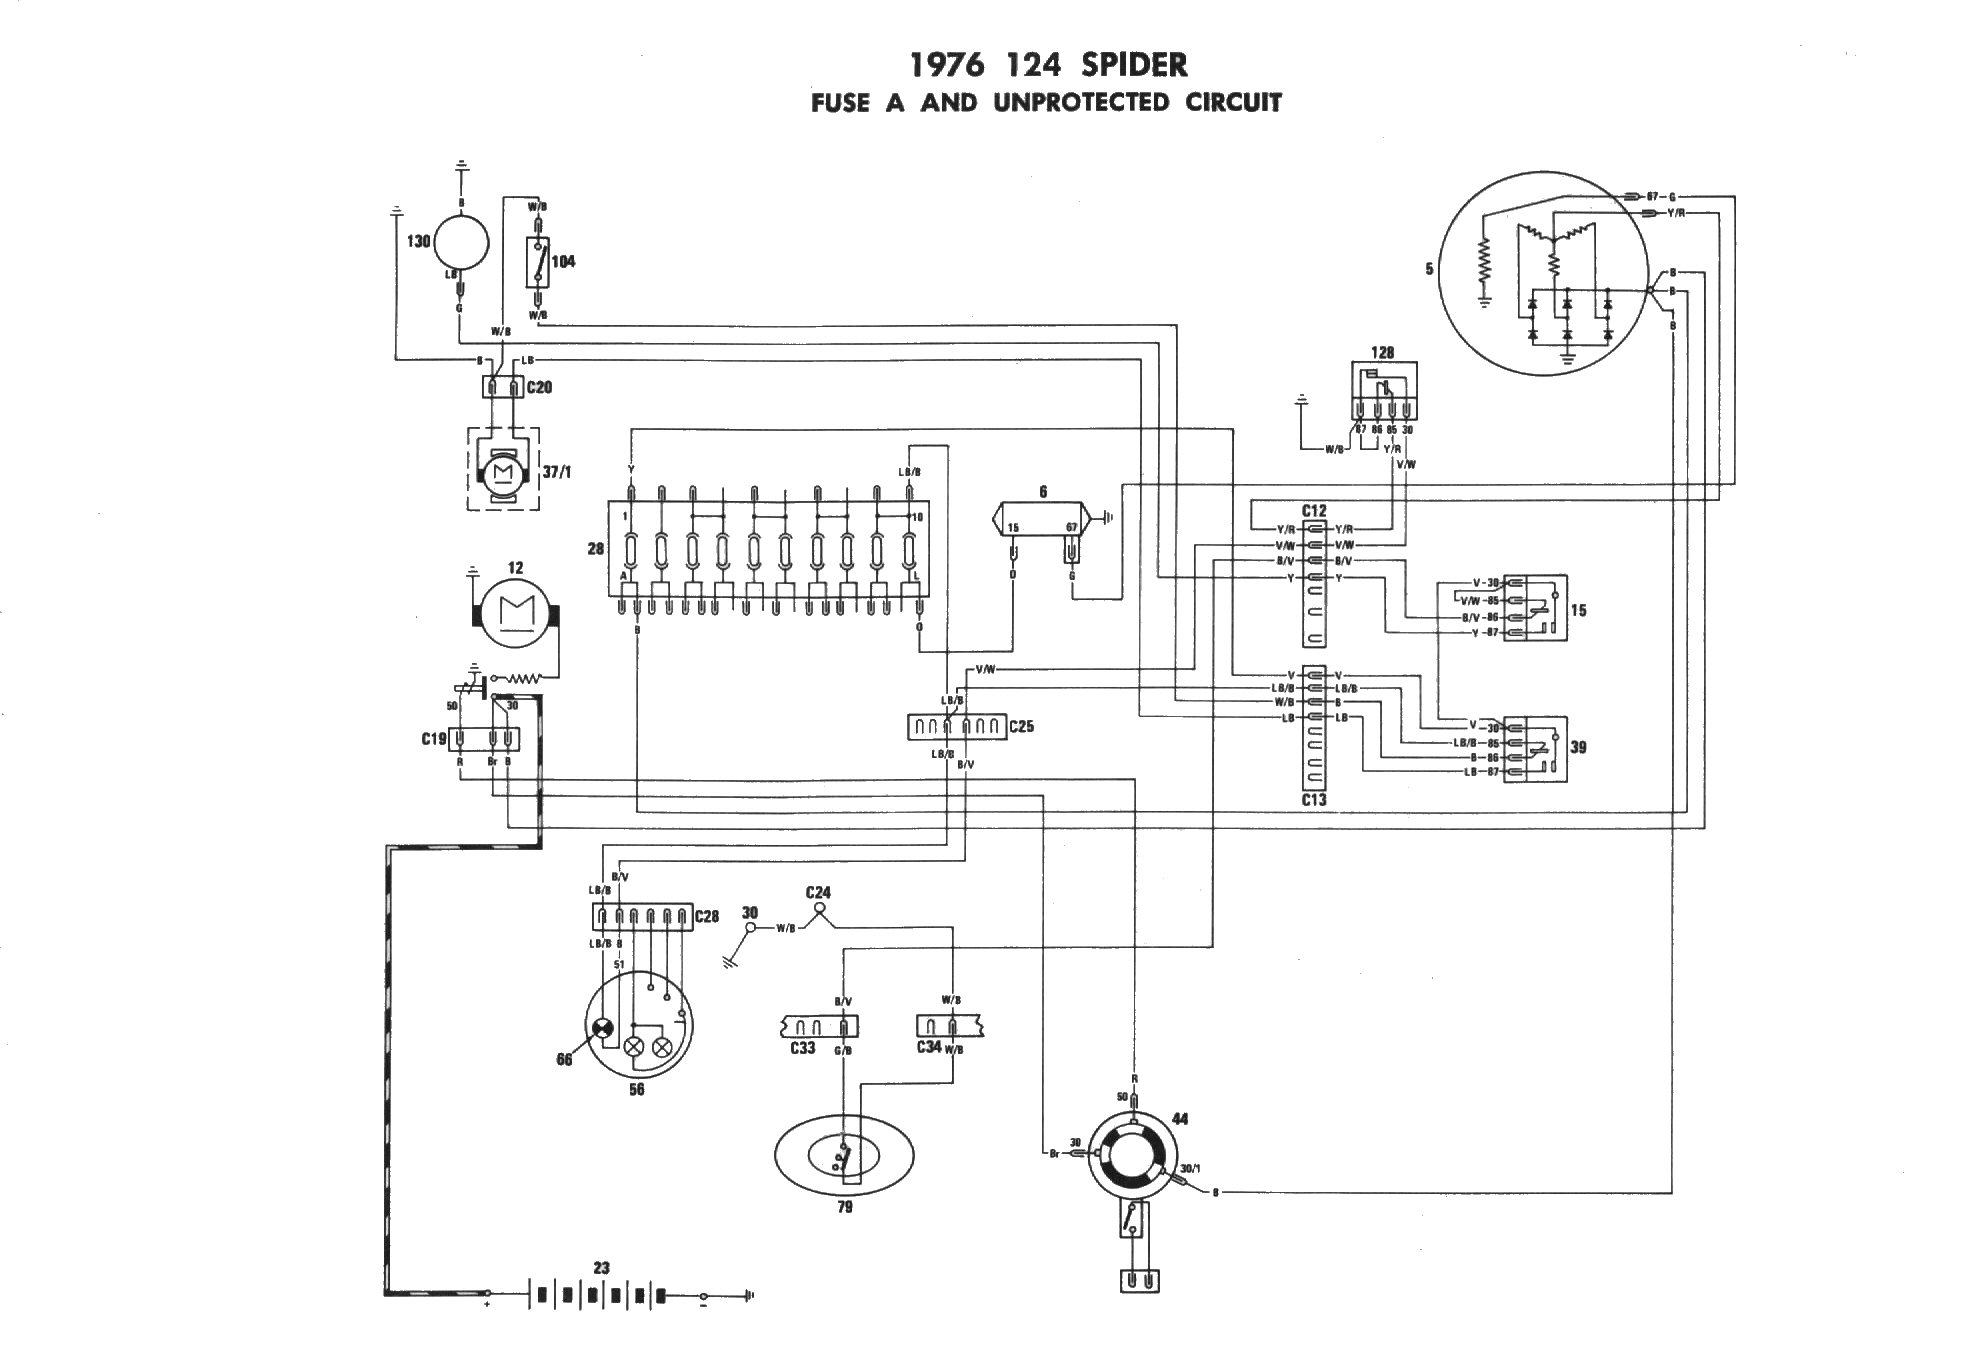 1978 Fiat X19 Wiring Diagram Manual E Books X1 9 Harness Library1978